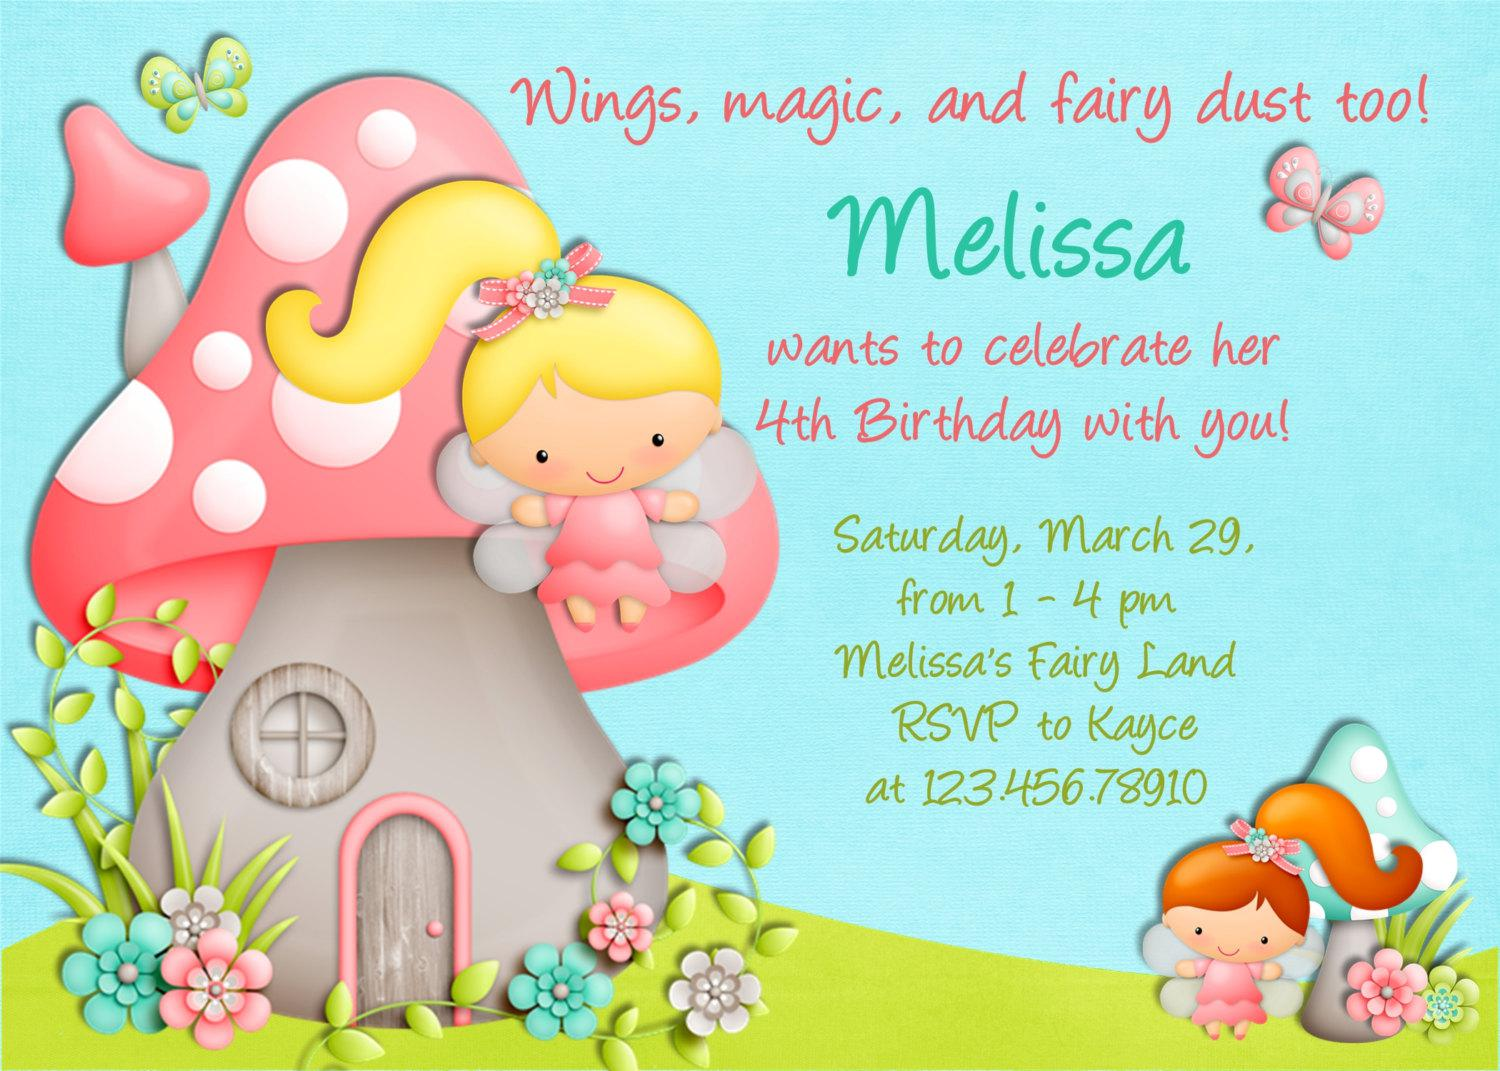 pictures for birthday invitation cards ; Fairy-Party-Birthday-Invitation-Cards-Printable